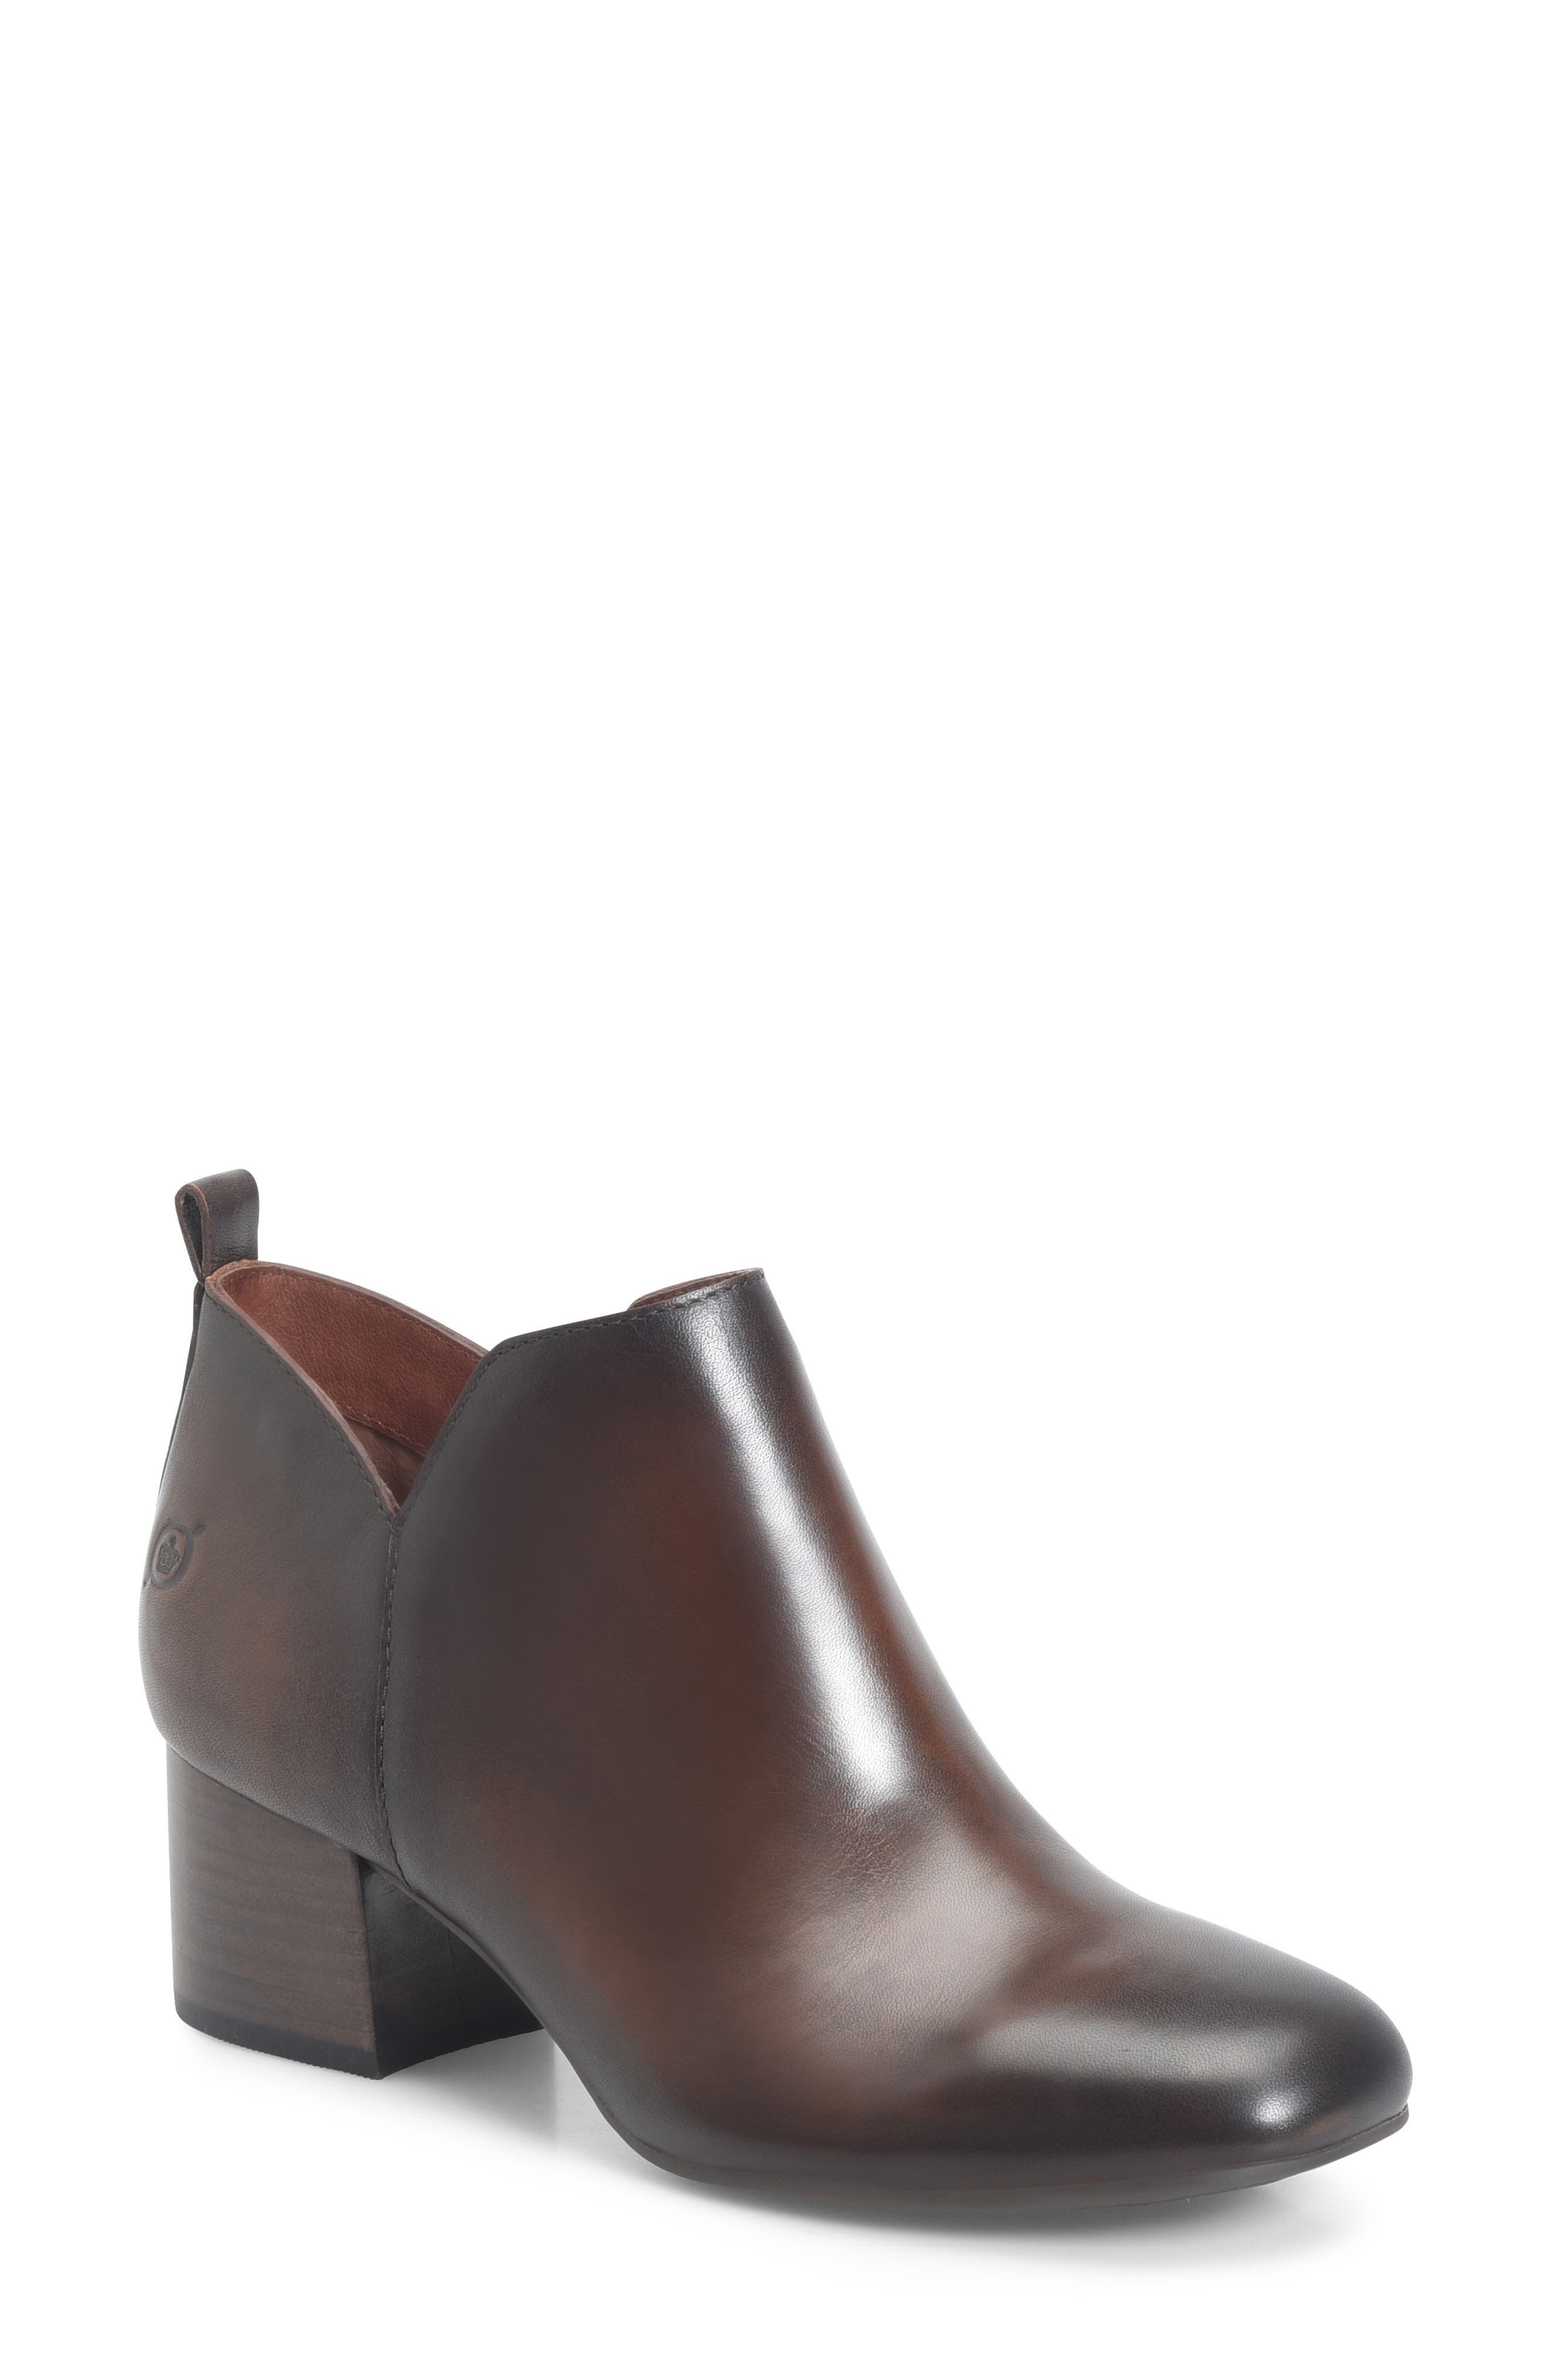 Aneto Bootie,                             Main thumbnail 1, color,                             BROWN/ BROWN LEATHER